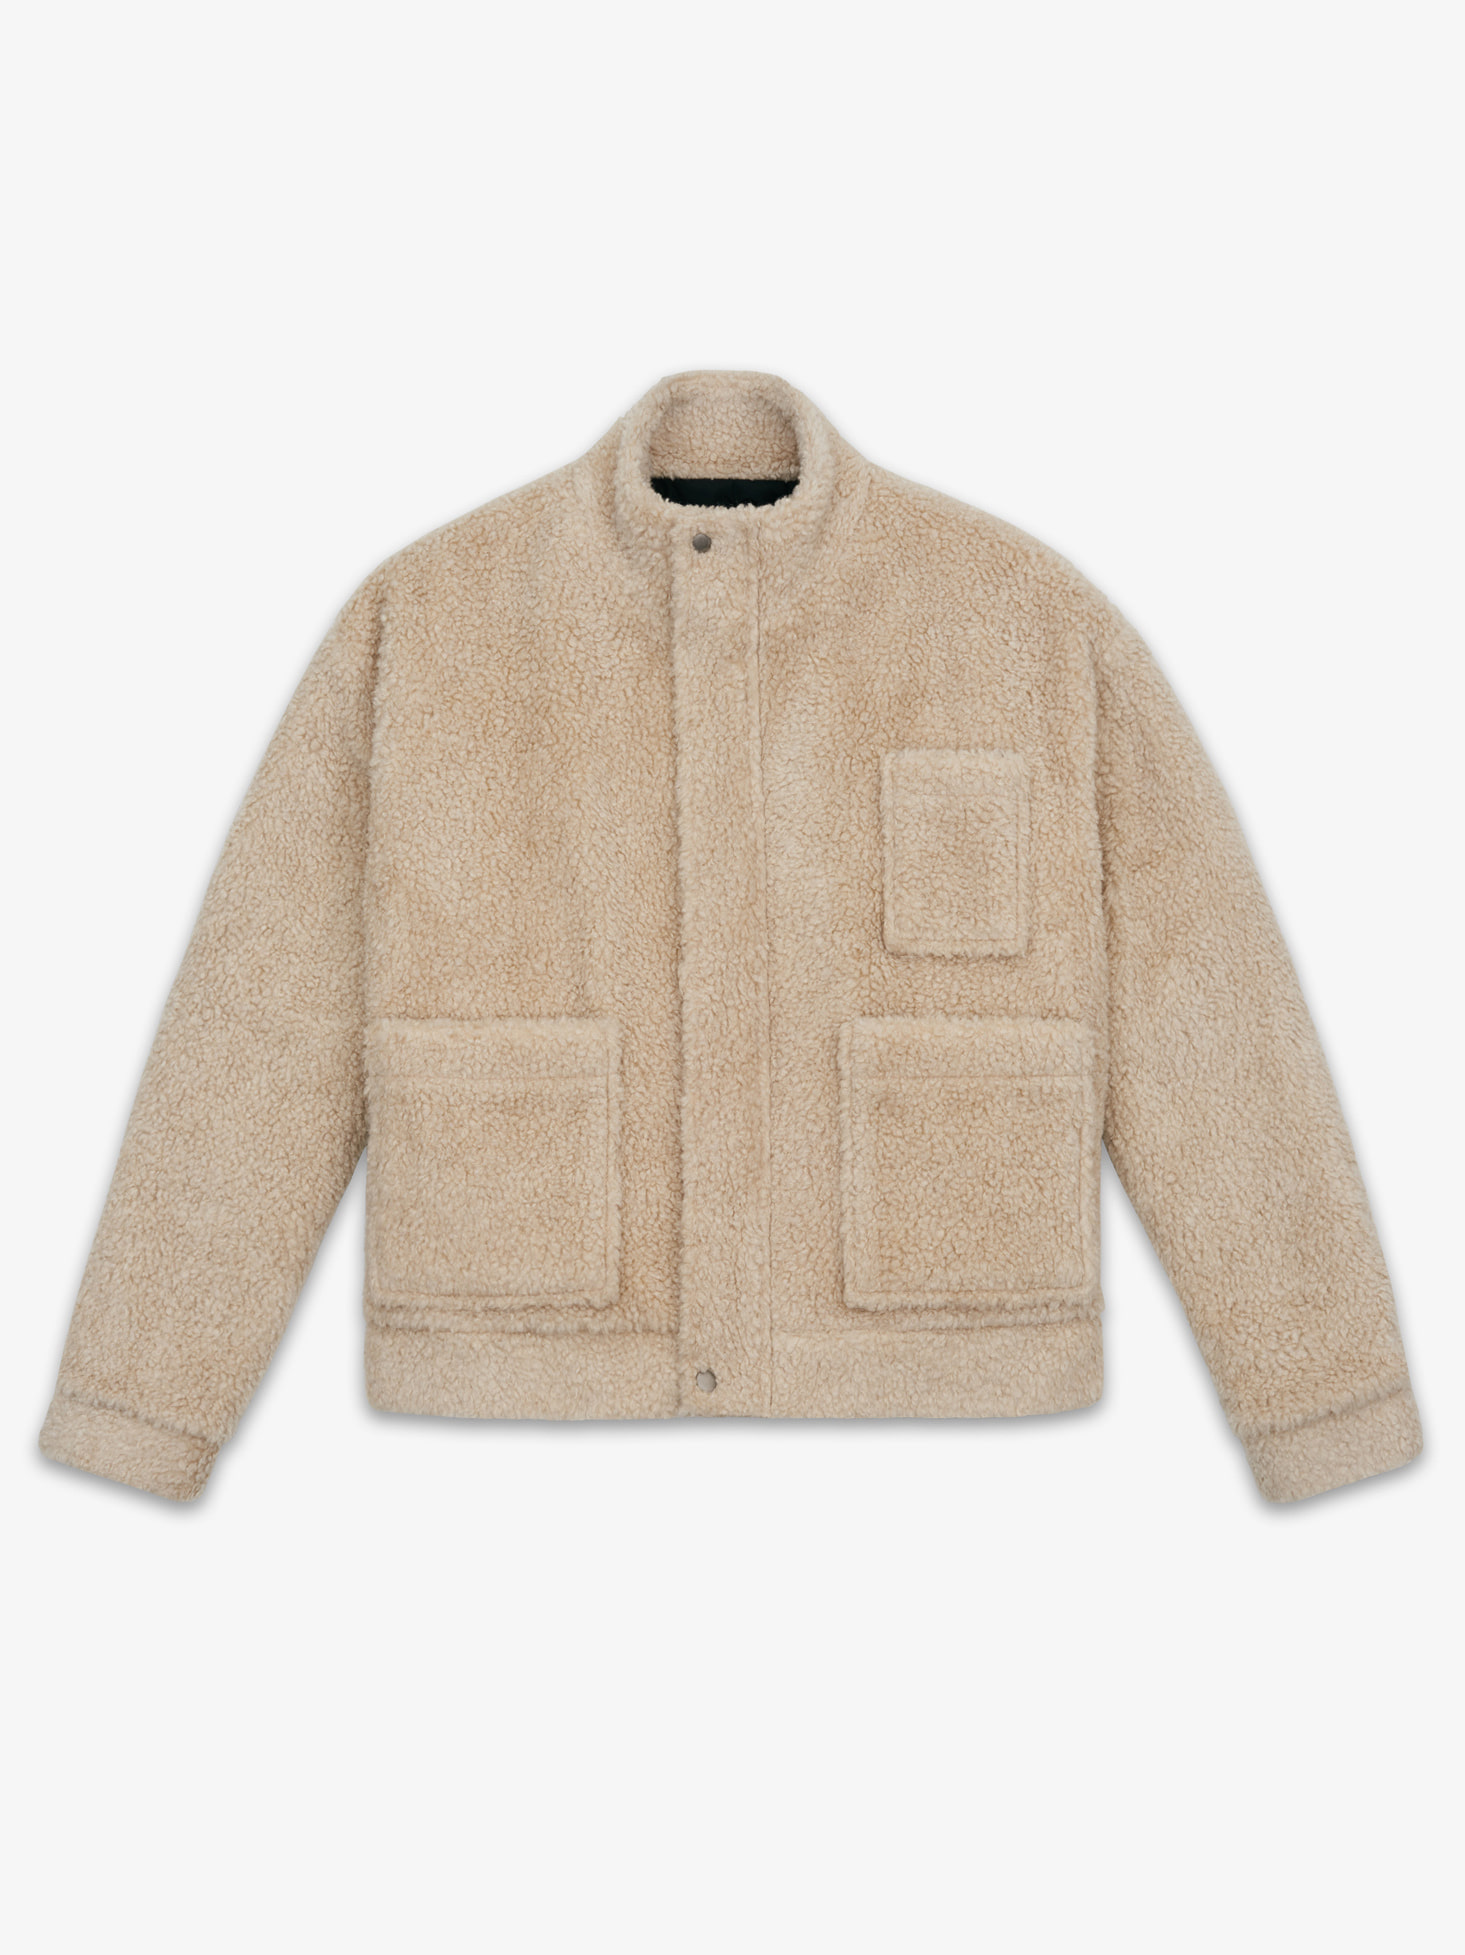 LAMBS WOOL MOBILE JACKET(BEIGE)